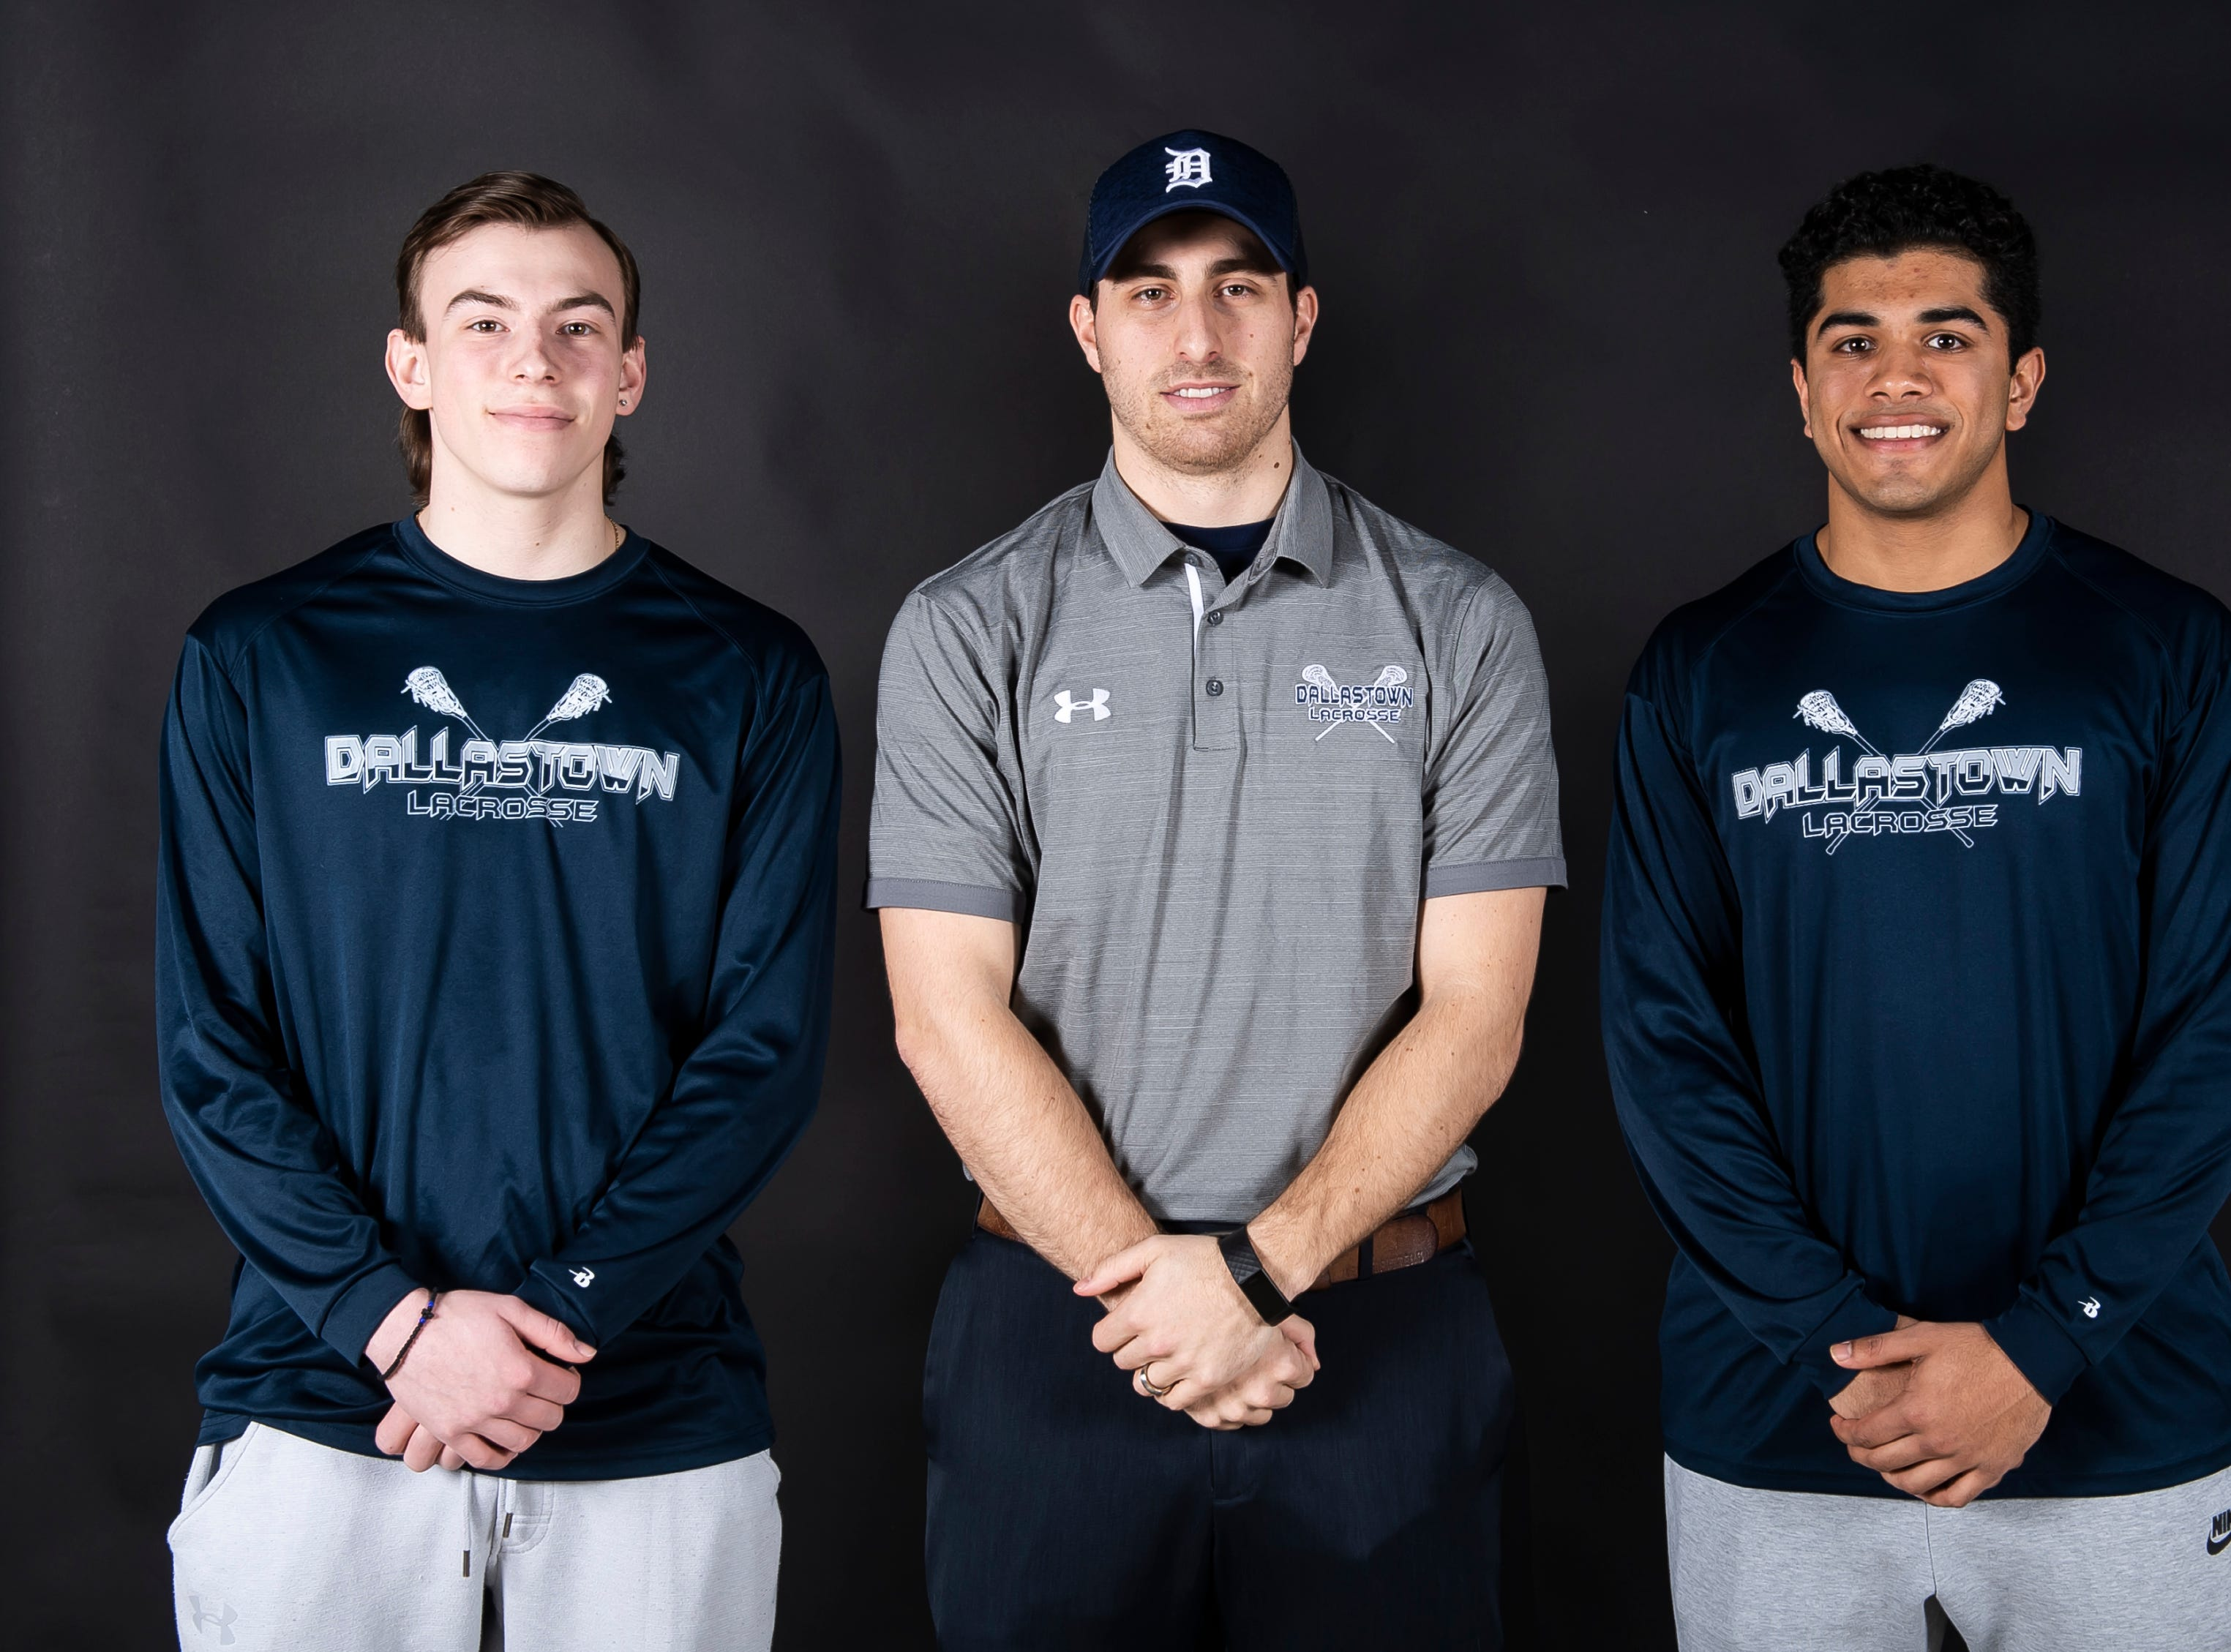 (From left) Dallastown lacrosse's Jay Shifflet, coach Joe Slessinger and Joshua Sebastian pose in the GameTimePA photo booth during spring sports media day in York Sunday, March 10, 2019.